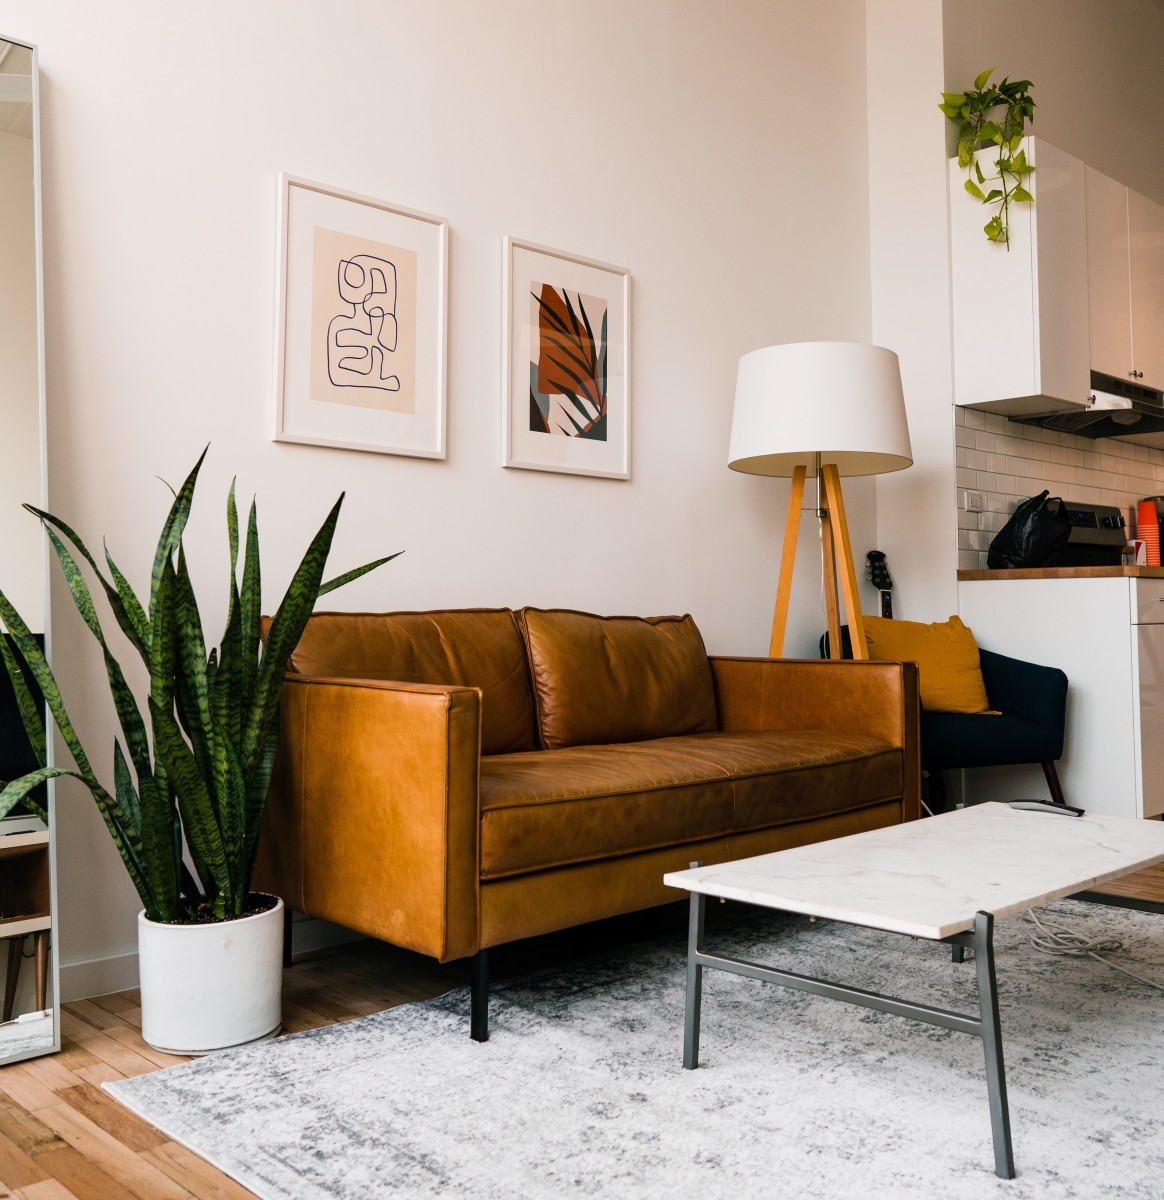 a-short-guide-on-integrating-indoor-plants-in-your-interior-design